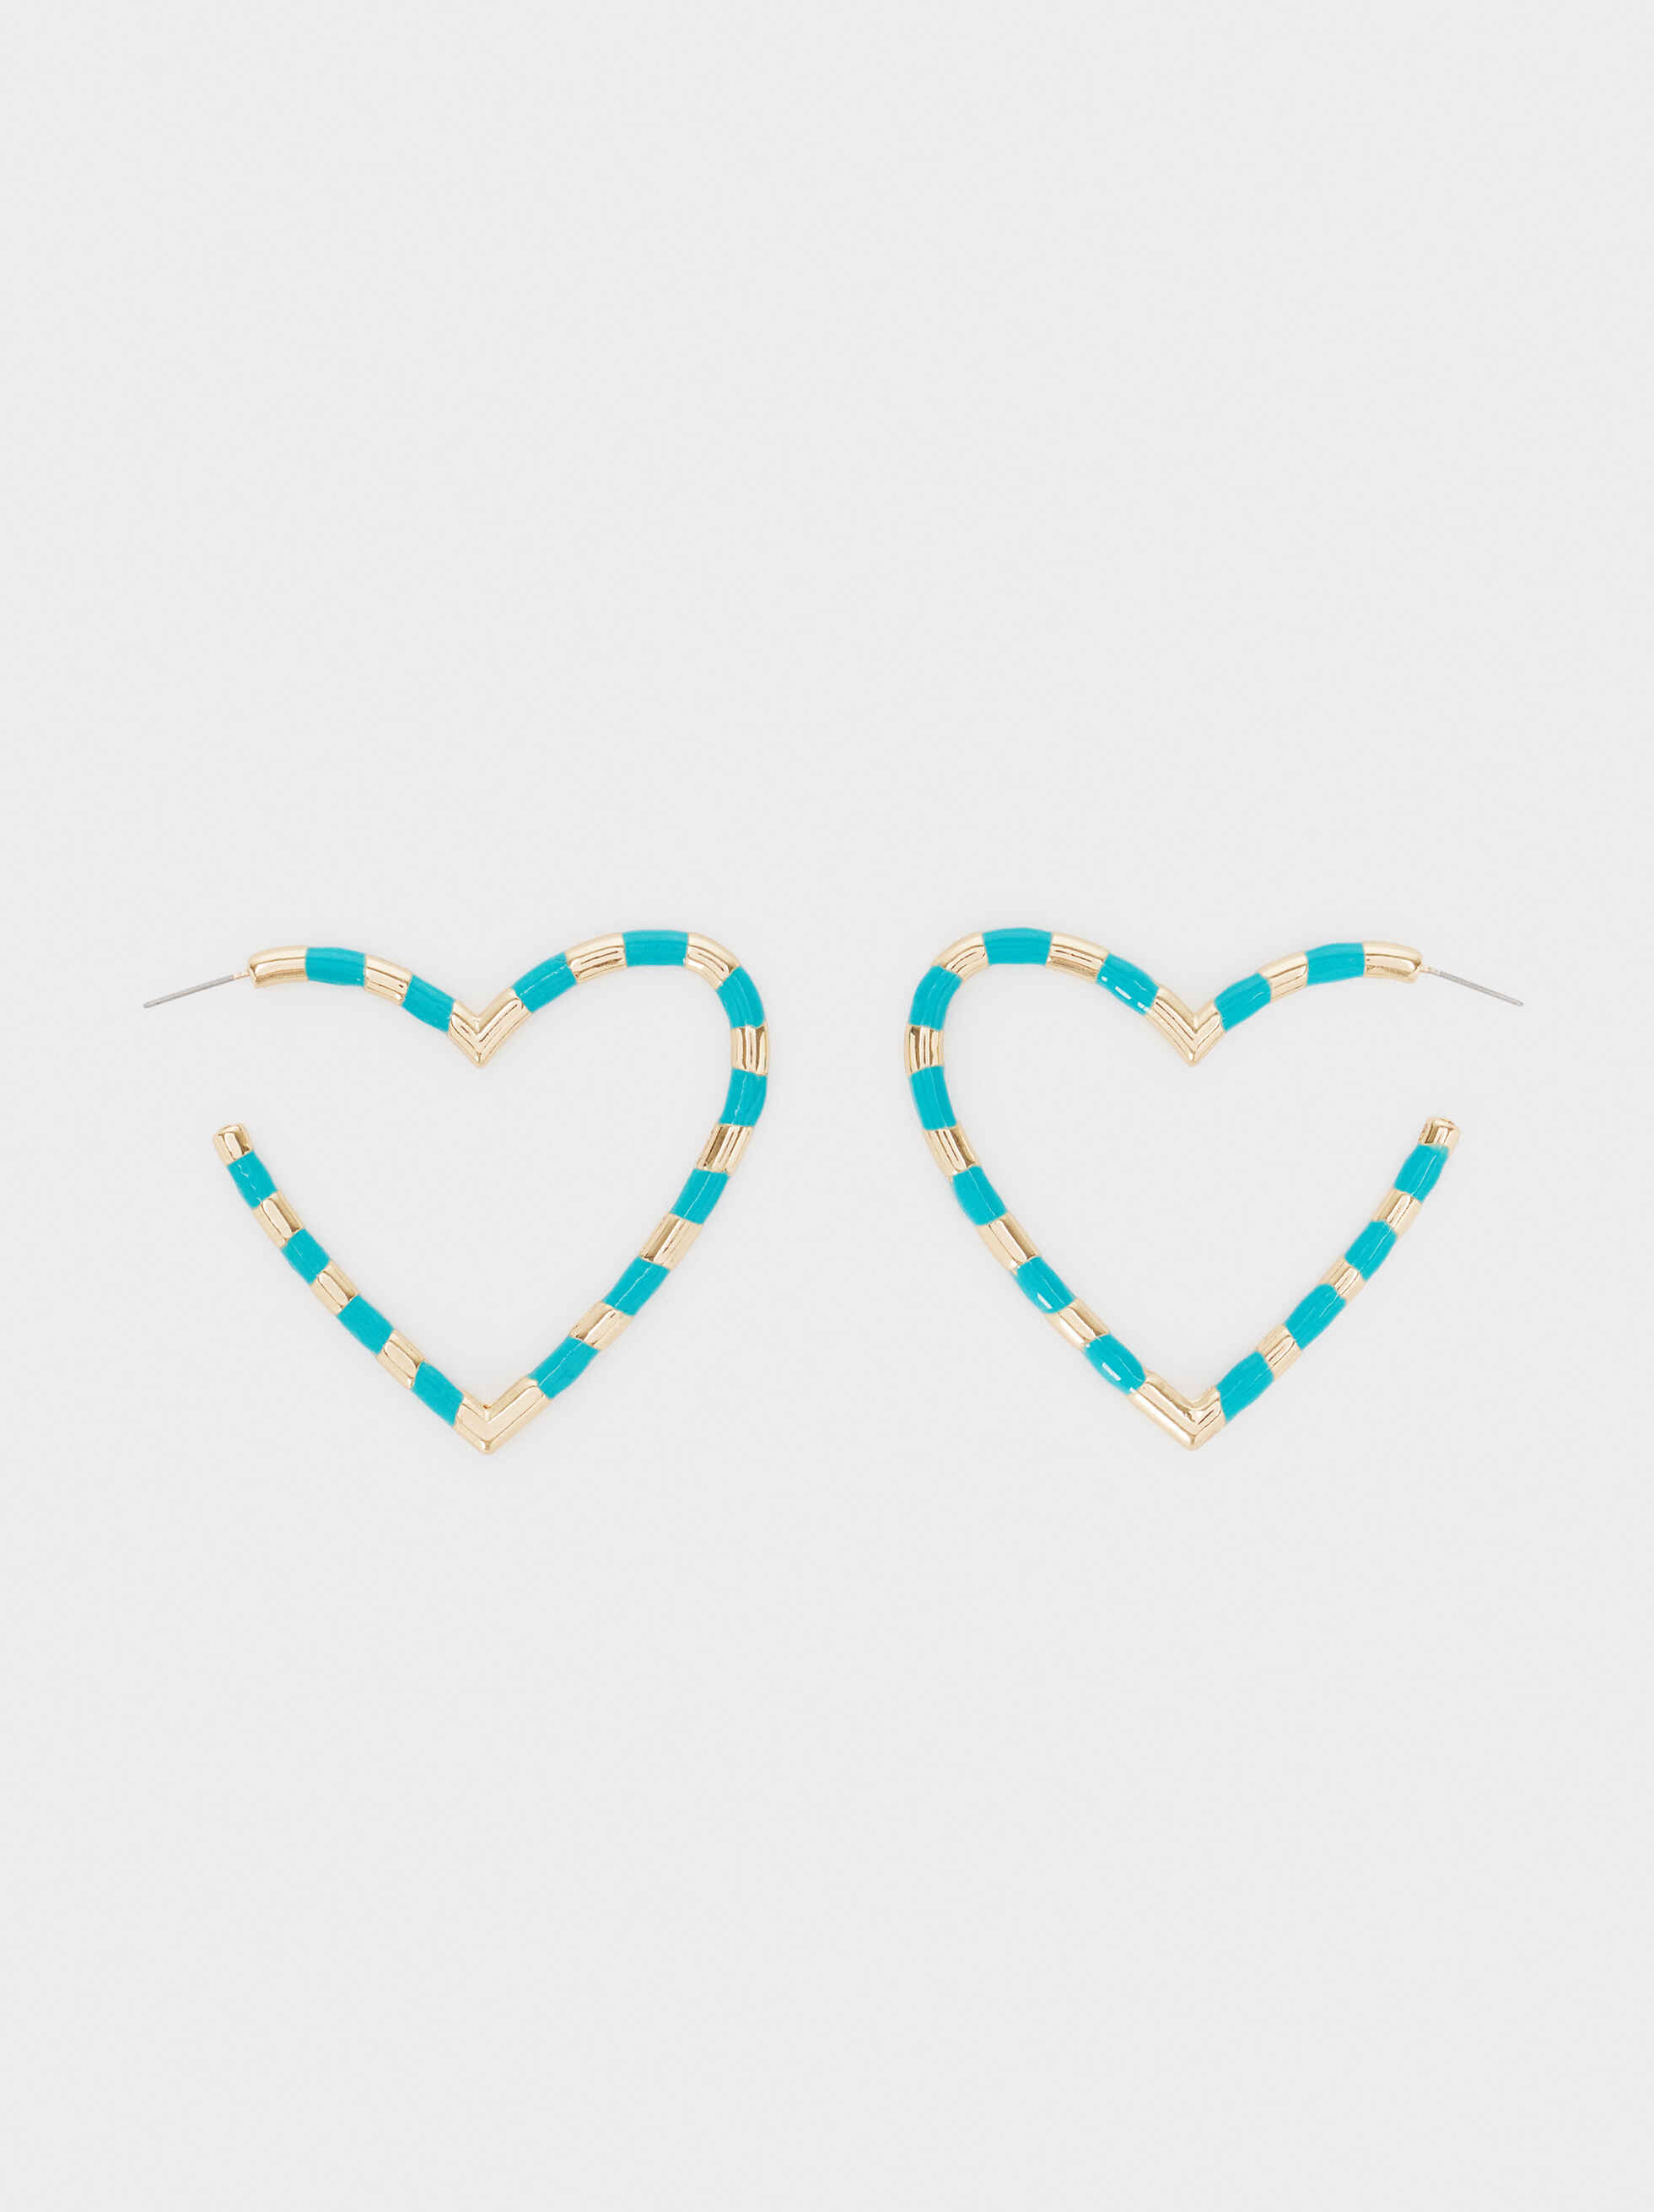 Large Golden Heart Hoop Earrings, Multicolor, hi-res